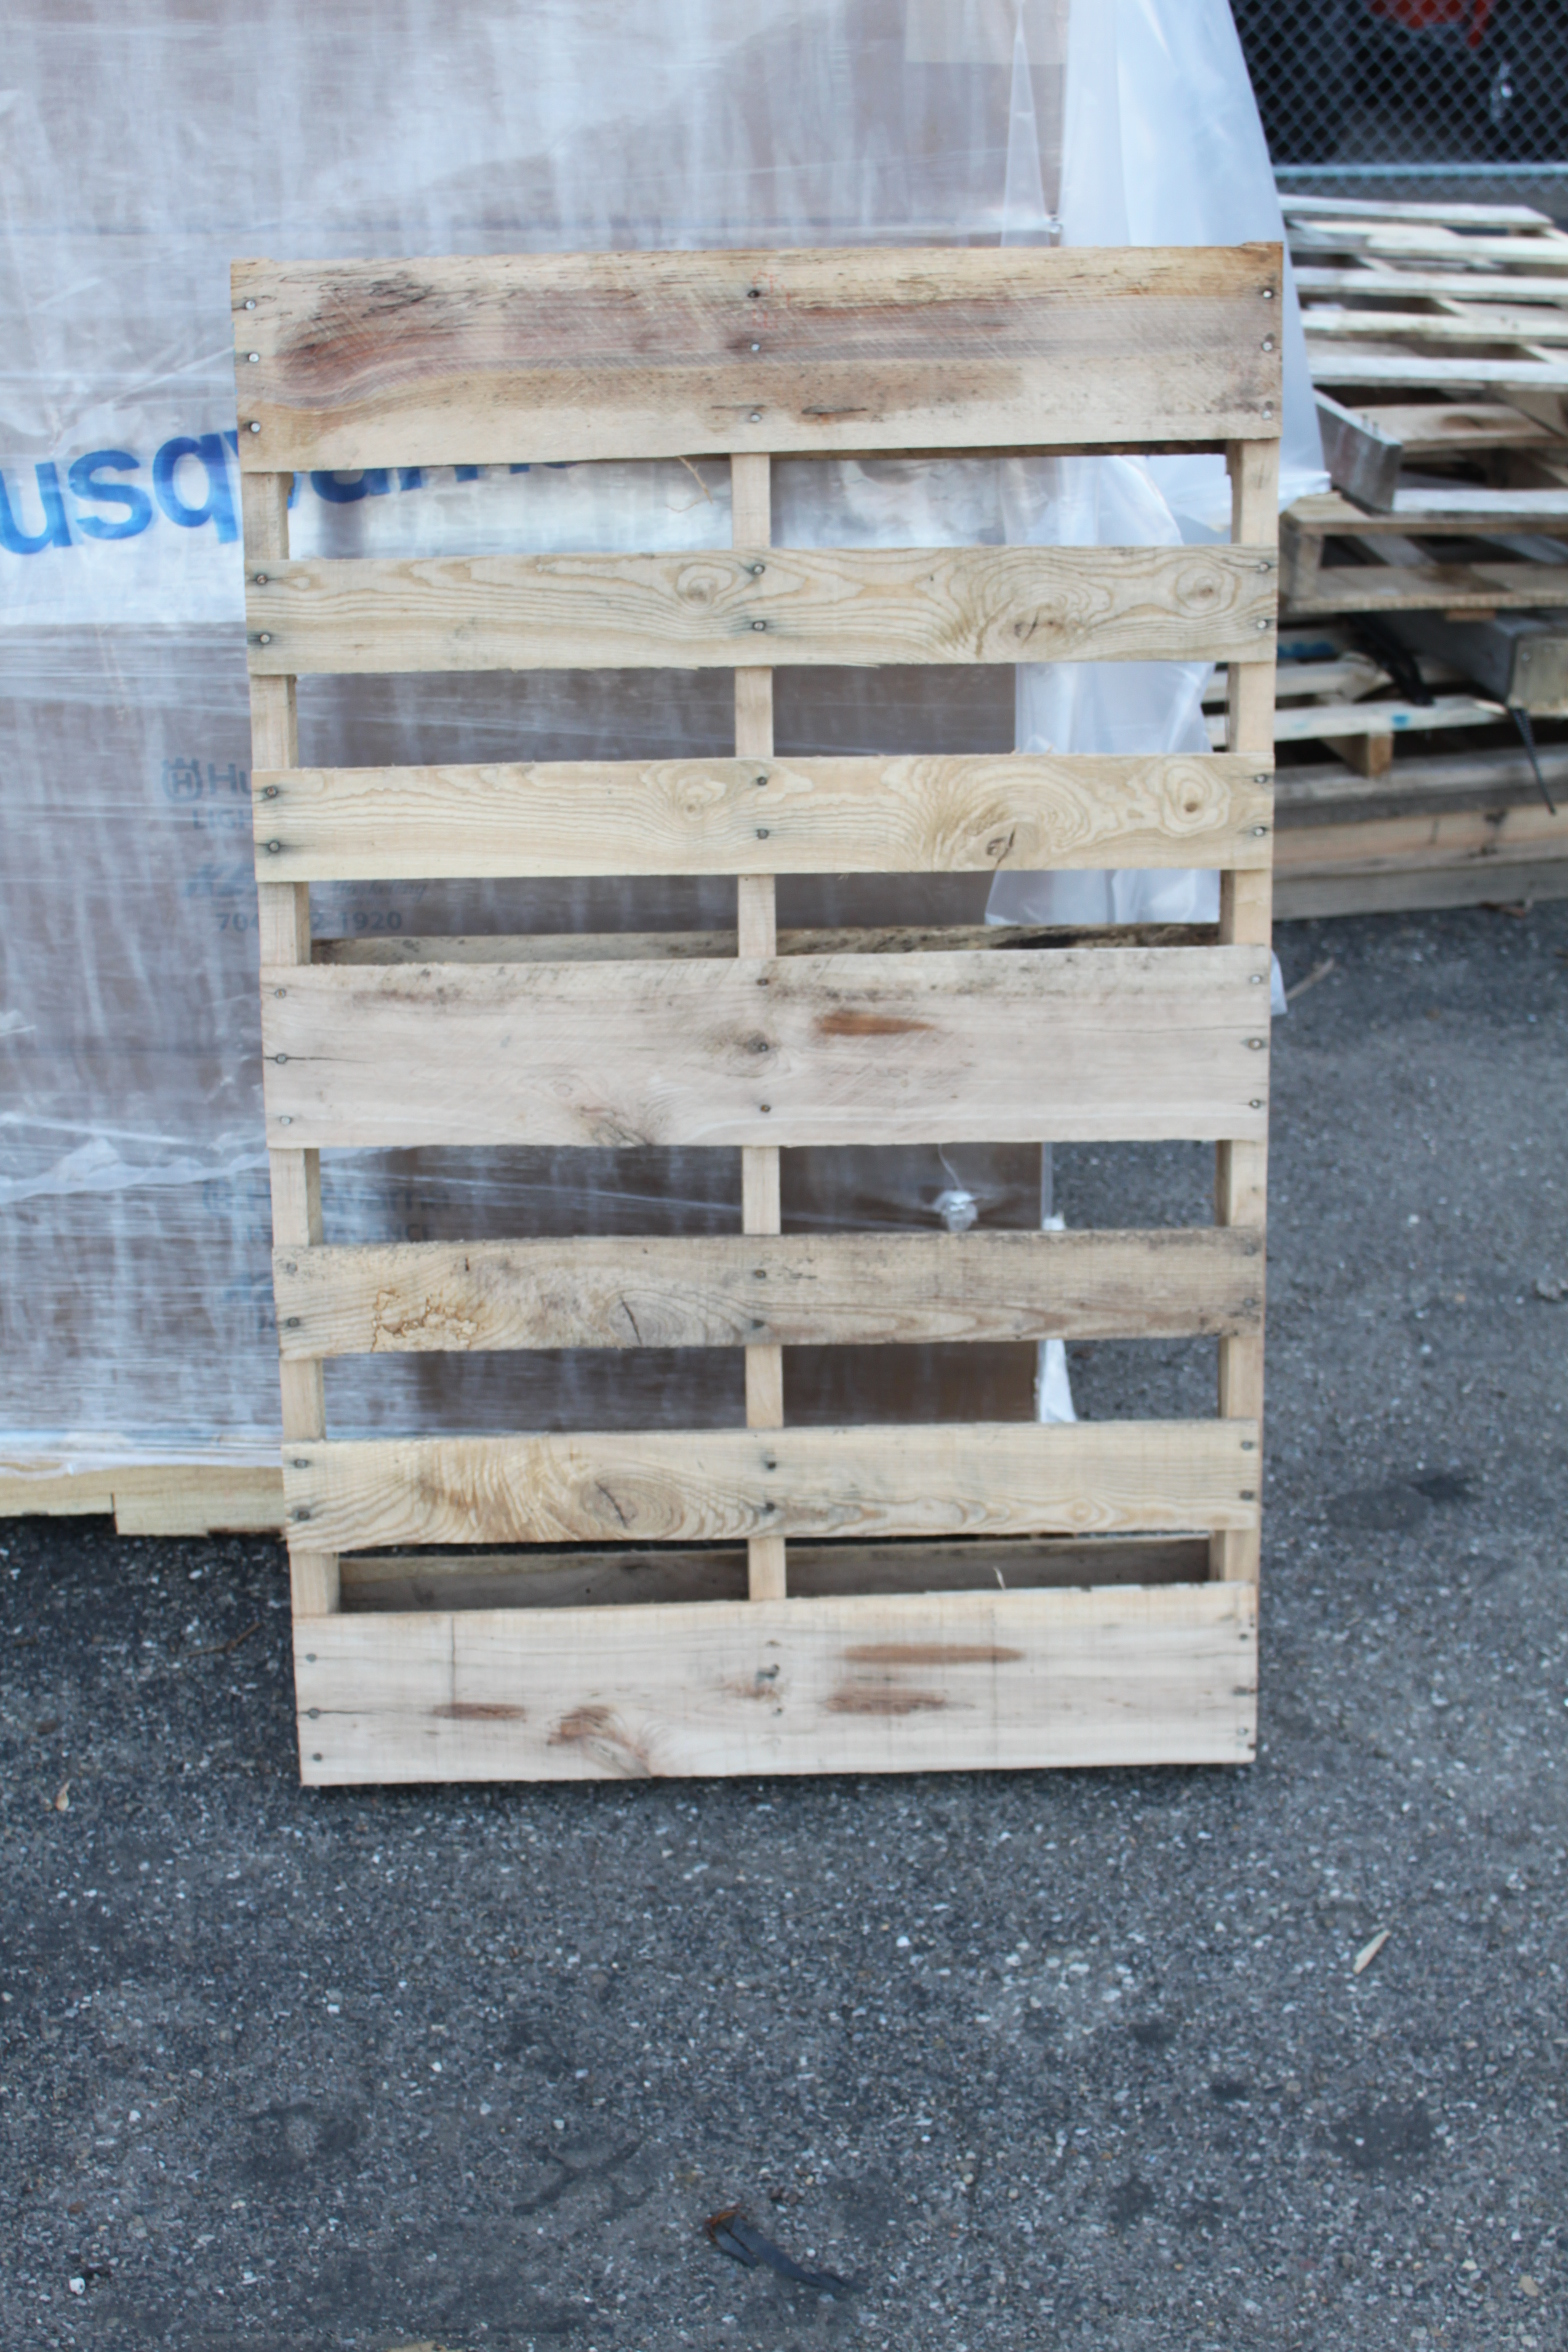 6 Simple Tips To Find Free Pallets and Reclaimed Materials - Old World  Garden Farms - 6 Simple Tips To Find Free Pallets And Reclaimed Materials - Old